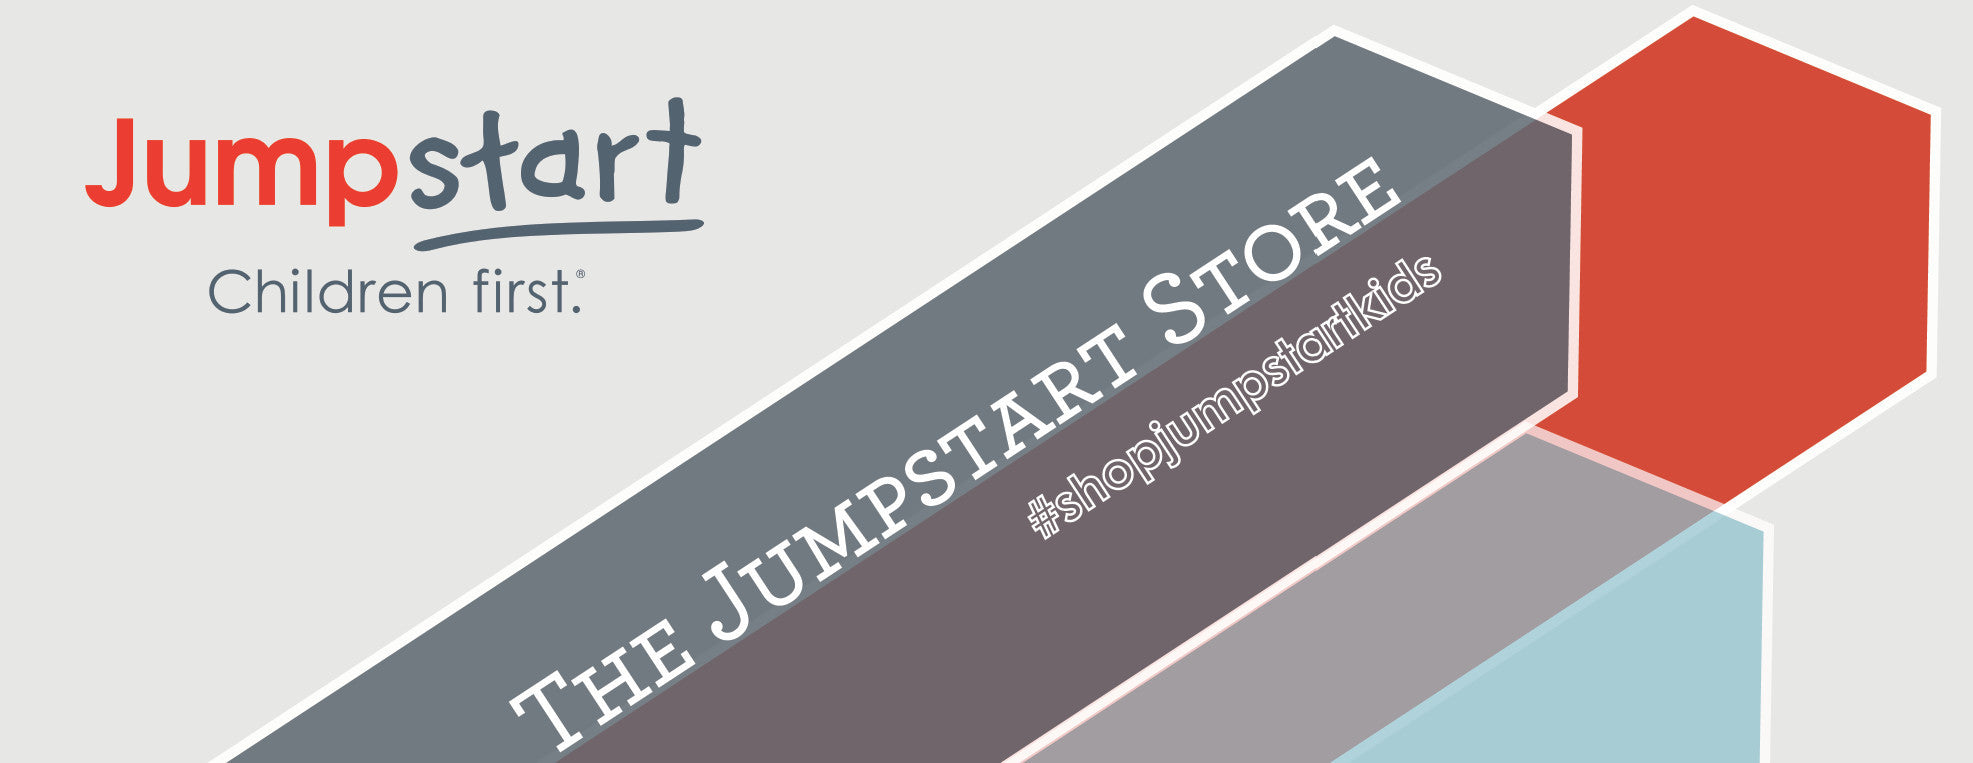 Learn more about Jumpstart at www.jstart.org